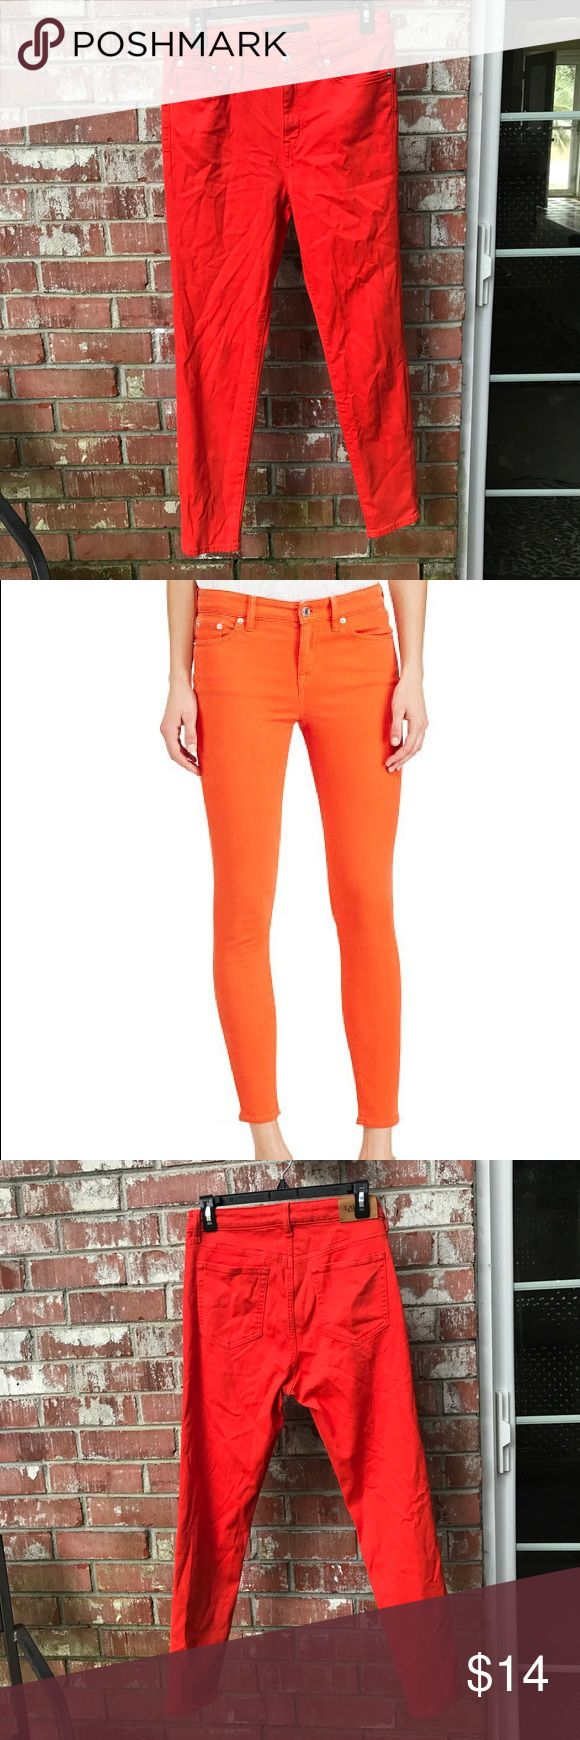 "RL Orange Skinny Jeans Premier Skinny Ankle. Bold/Poppy/Orange. Great smooth & Stretchy Jean. 10"" rise, 15 waist, 28"" inseam. Clean, always gently washed and line dried. In great condition Lauren Ralph Lauren Jeans Skinny"